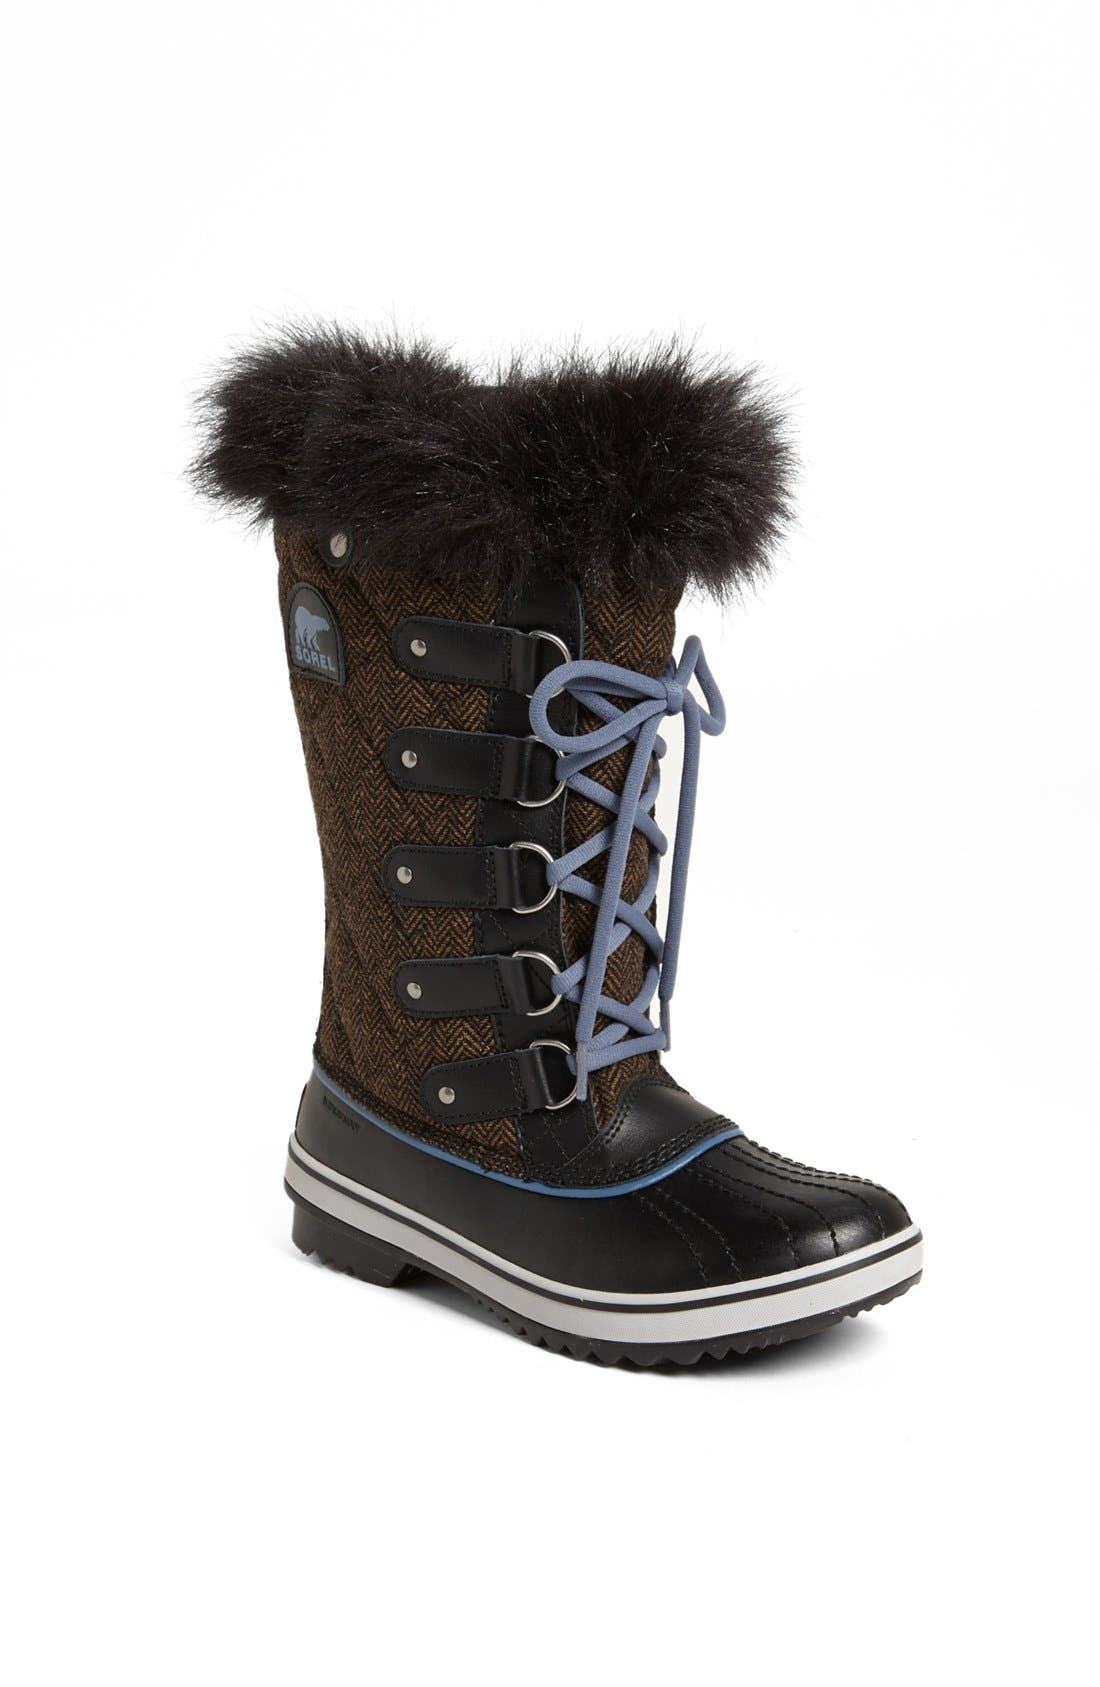 Alternate Image 1 Selected - SOREL 'Tofino' Waterproof Boot